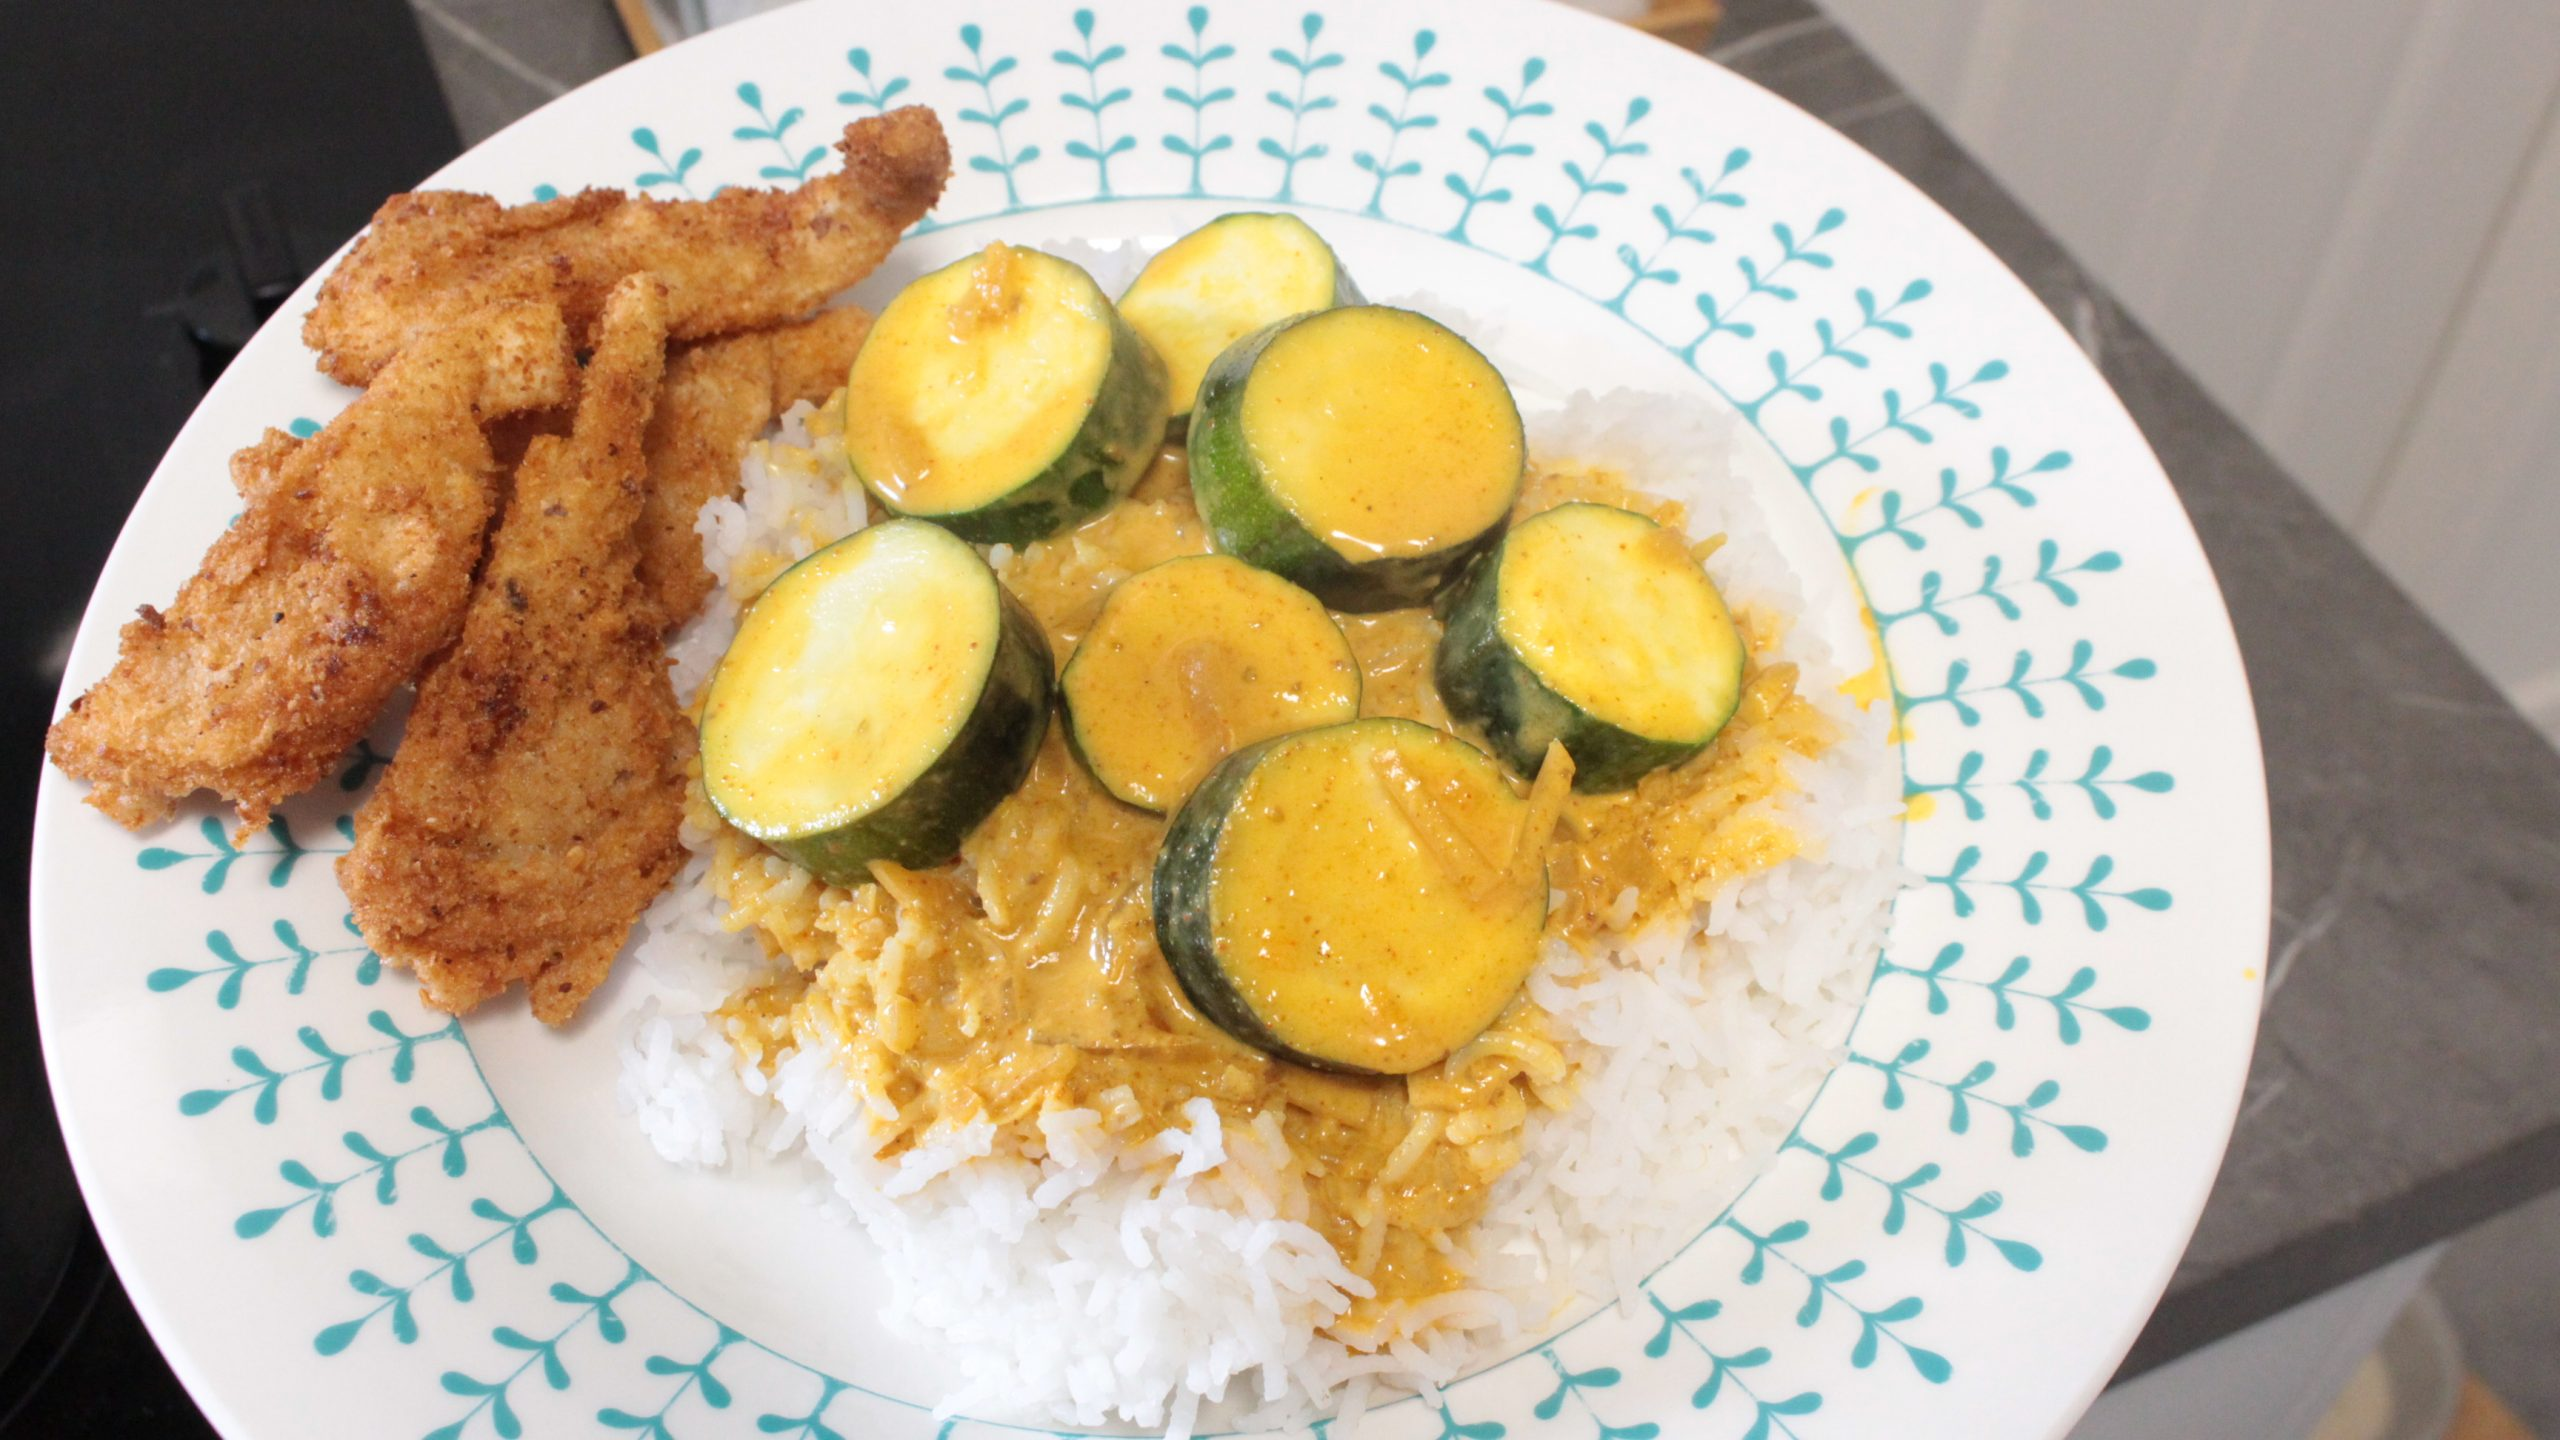 Zucchini Curry with Rice and Crumb-fried Oyster Mushrooms